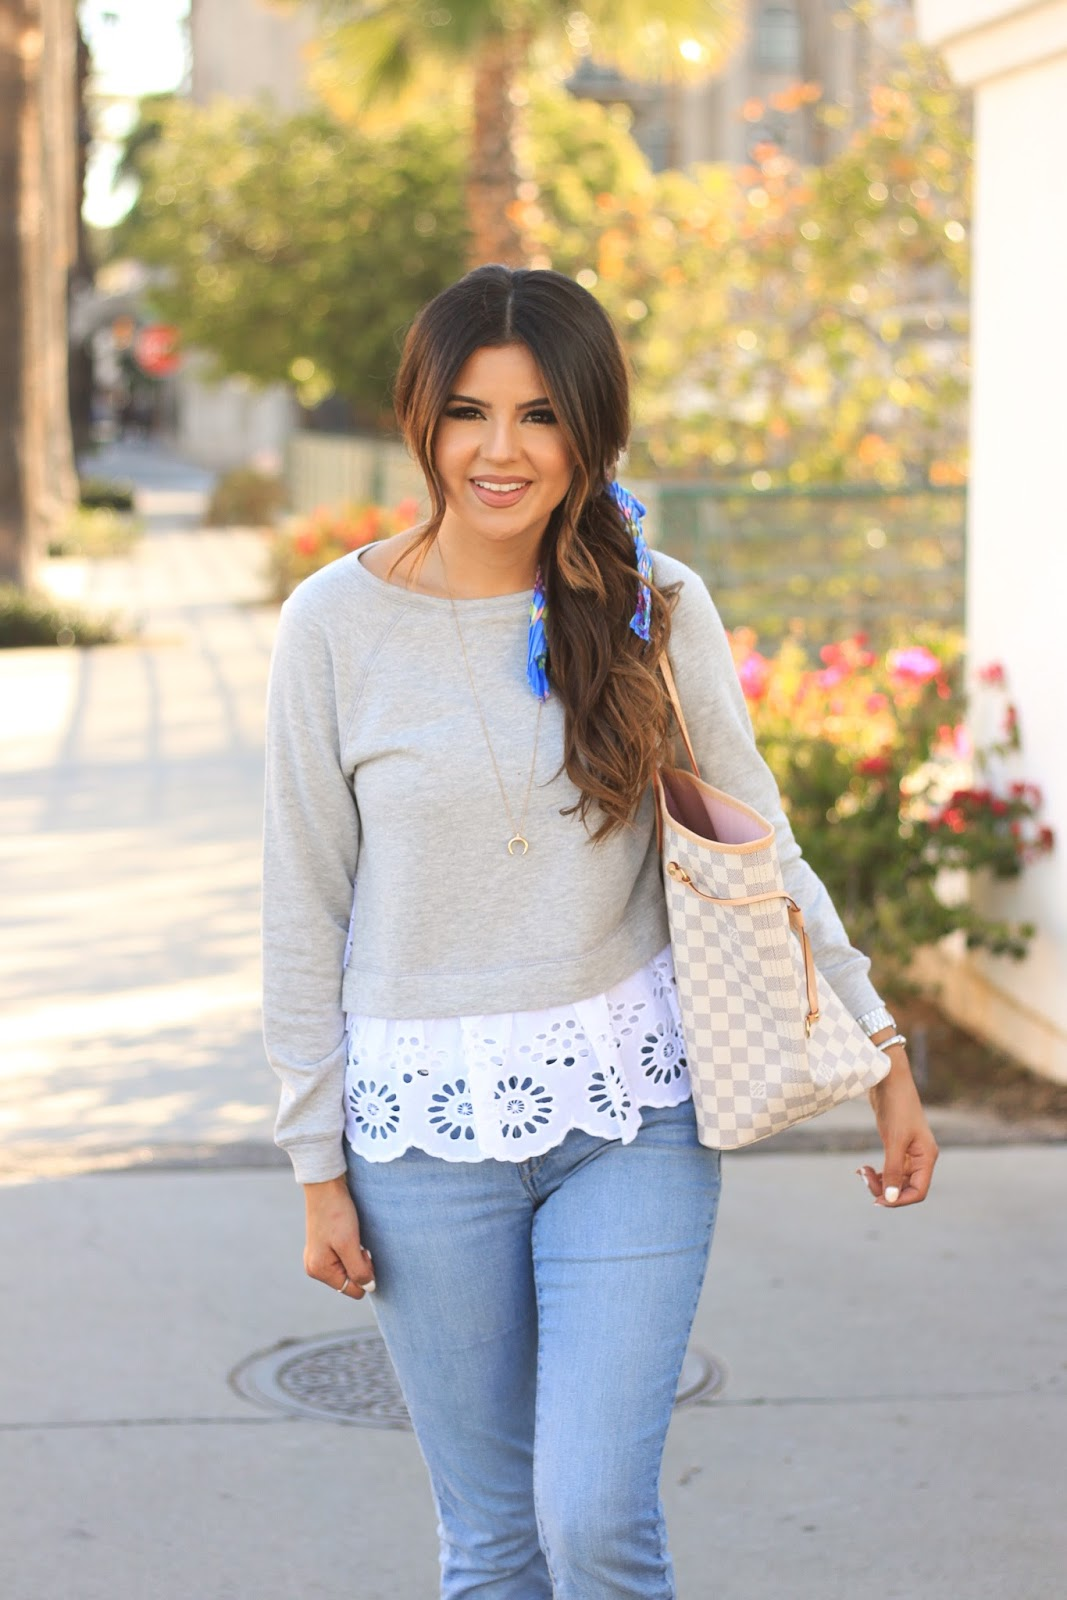 How to dress up a eyelet sweatshirt with a floral hair scarf and crescent pendant necklace